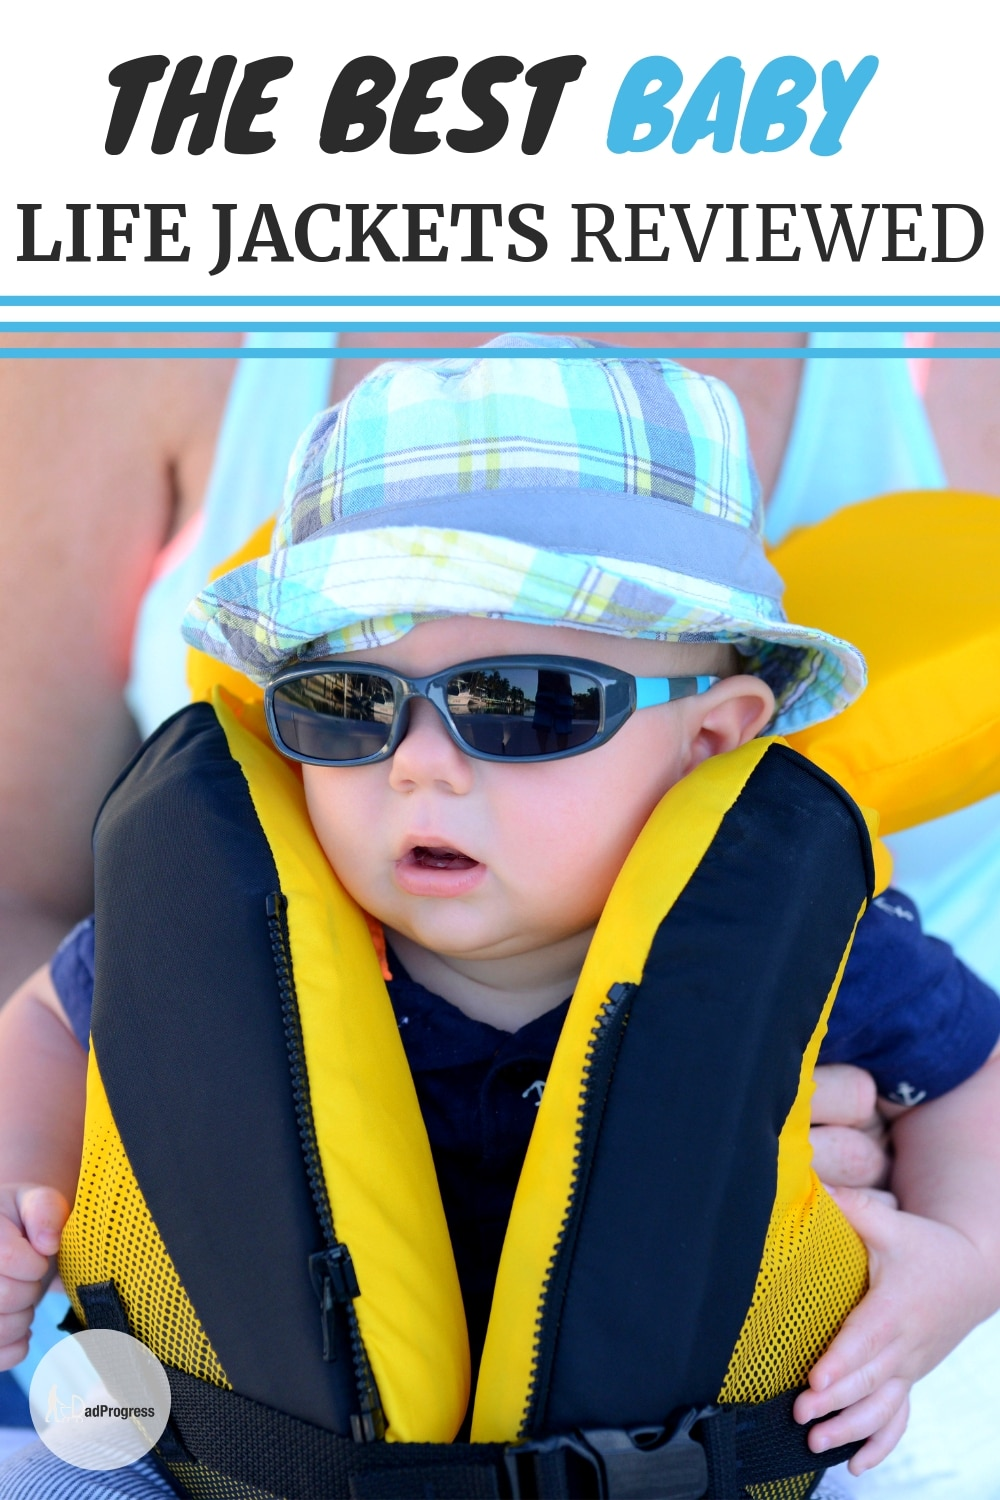 Boating is a fun activity for families, but if you take your infant or toddler with you, buy a life jacket for your baby boy or girl. Click to read my quick guide on safest and best infant life vests